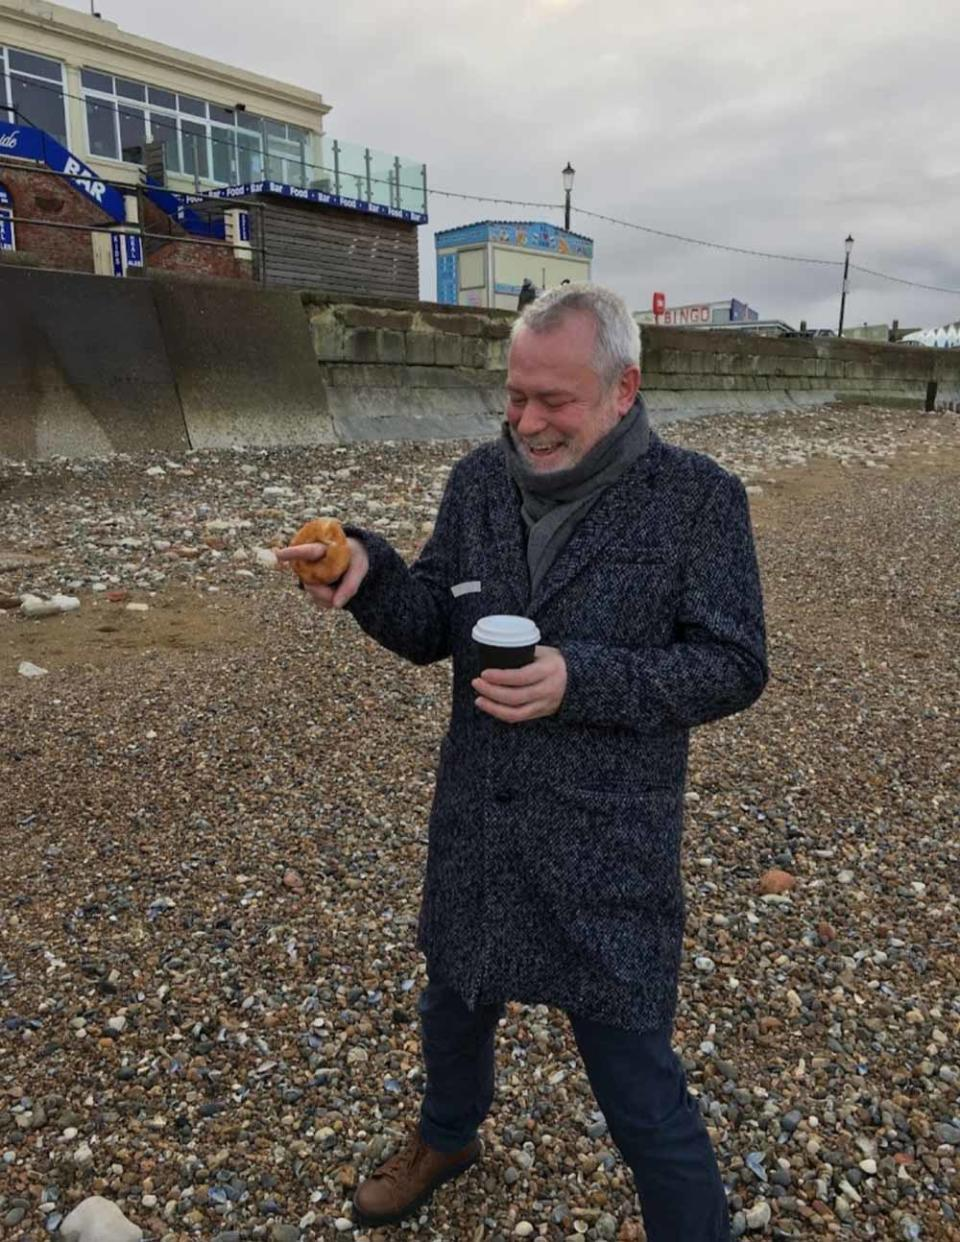 John proposed to Richard with a cinnamon ring doughnut on the beach. (Collect/PA Real Life)